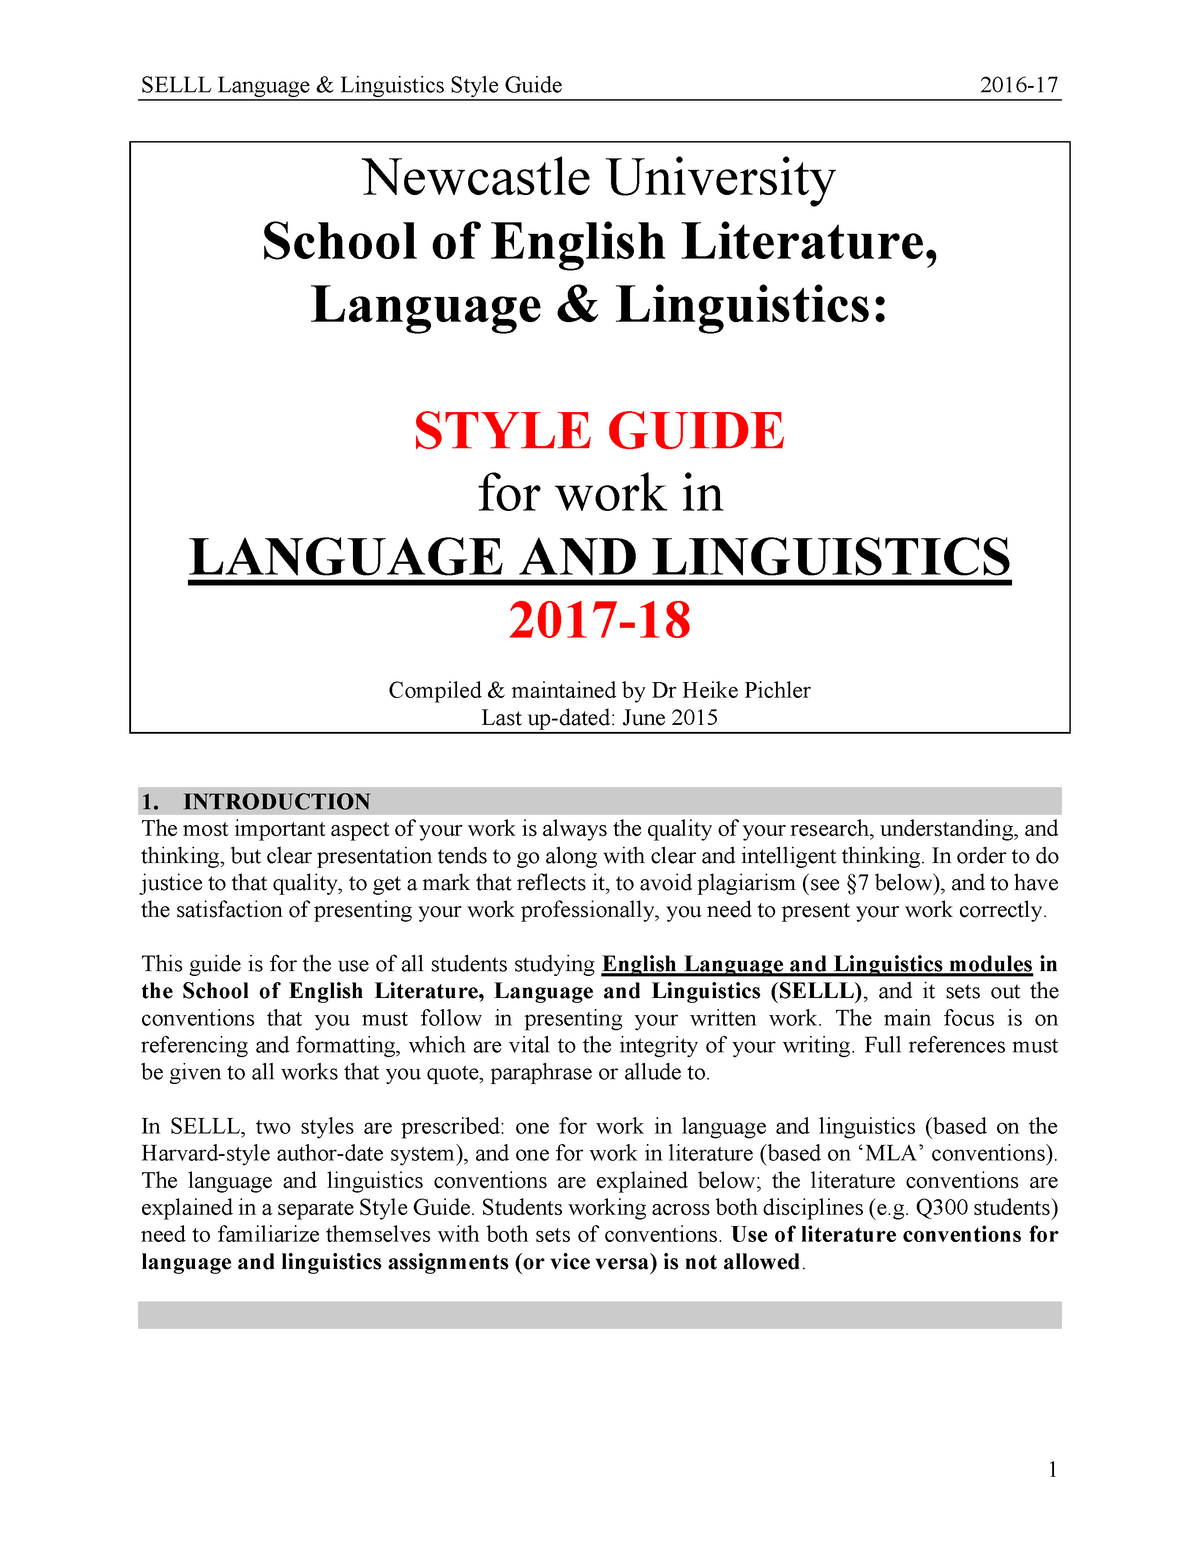 Selll language linguistics style guide 2017-18 - SEL1007: The Nature